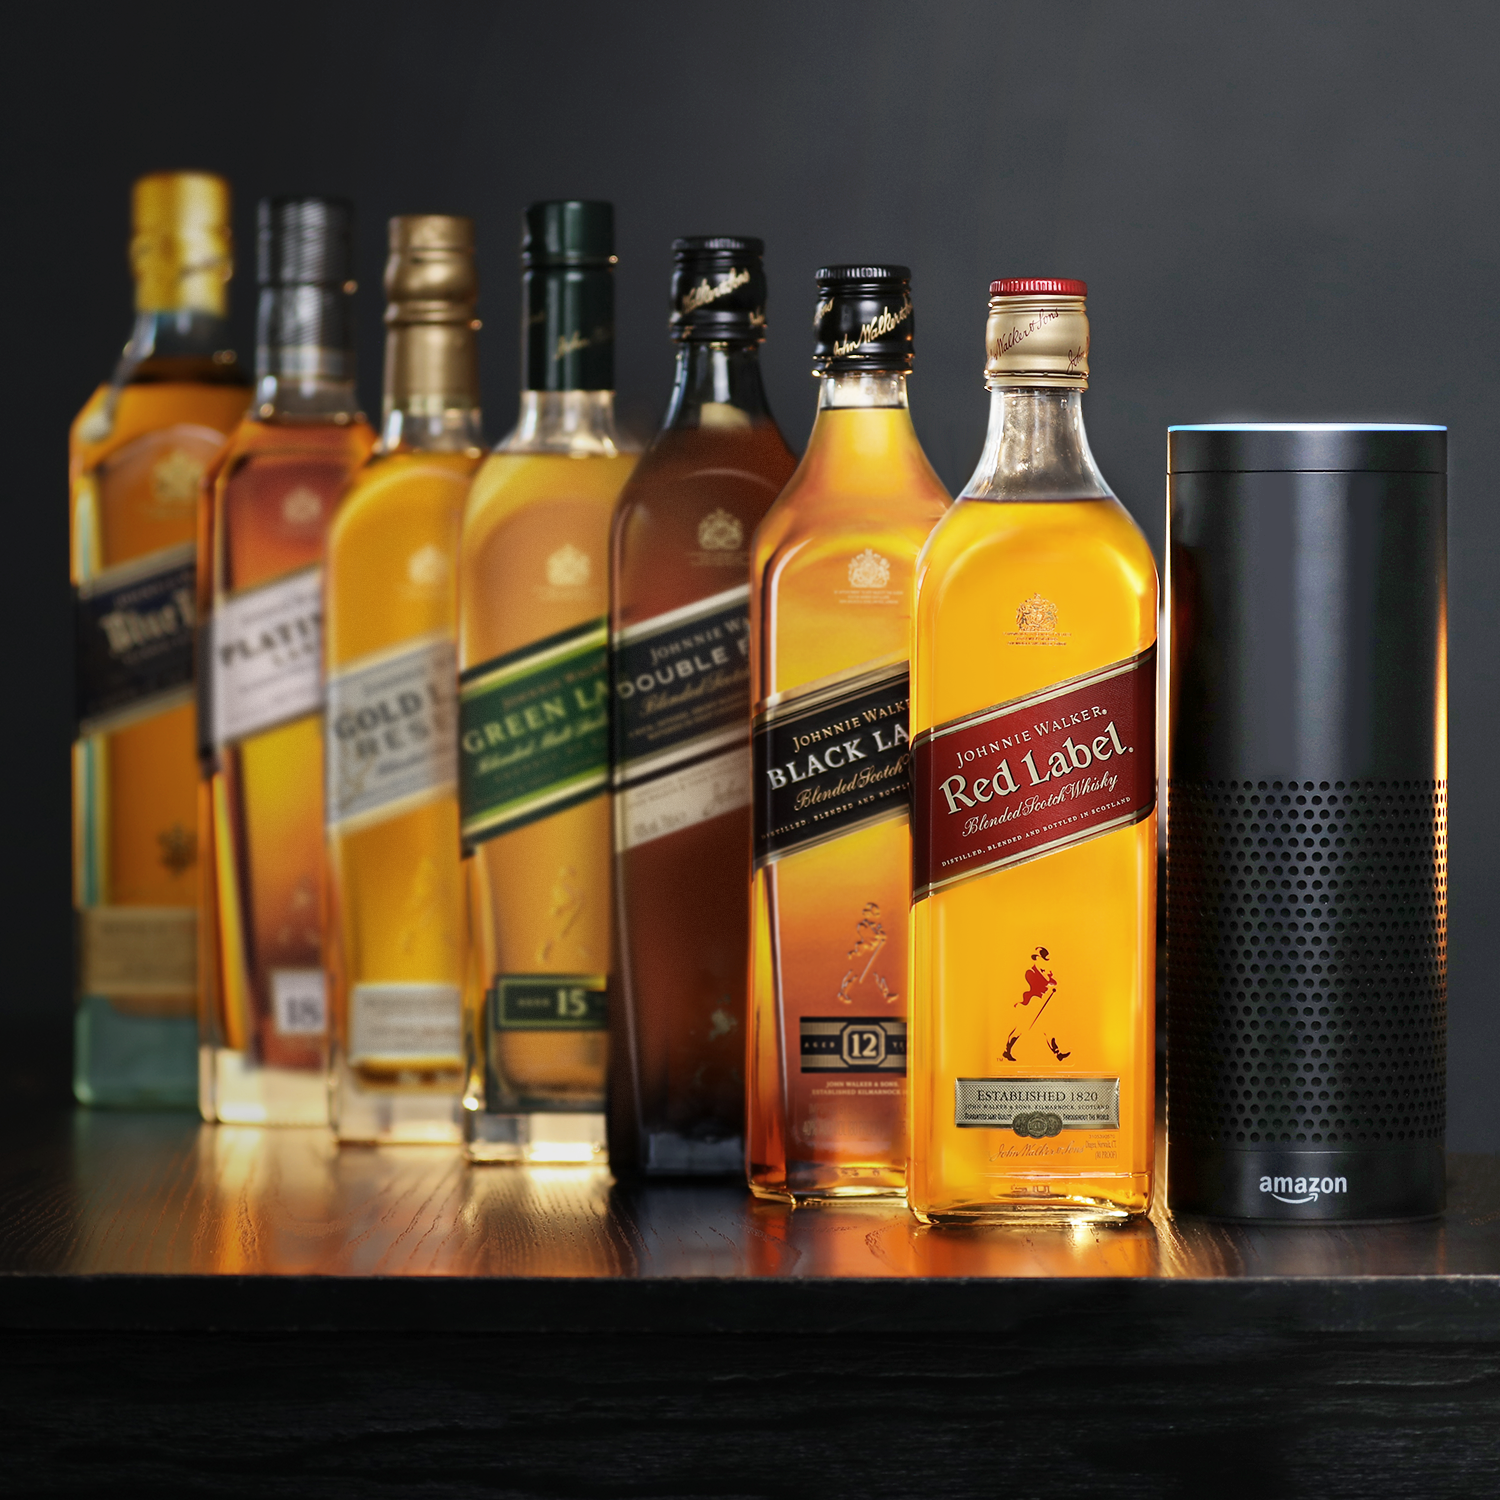 johnnie-walker-announces-digital-mentorship-program-world-class-whisky-education-now-available-from-home-or-on-the-go